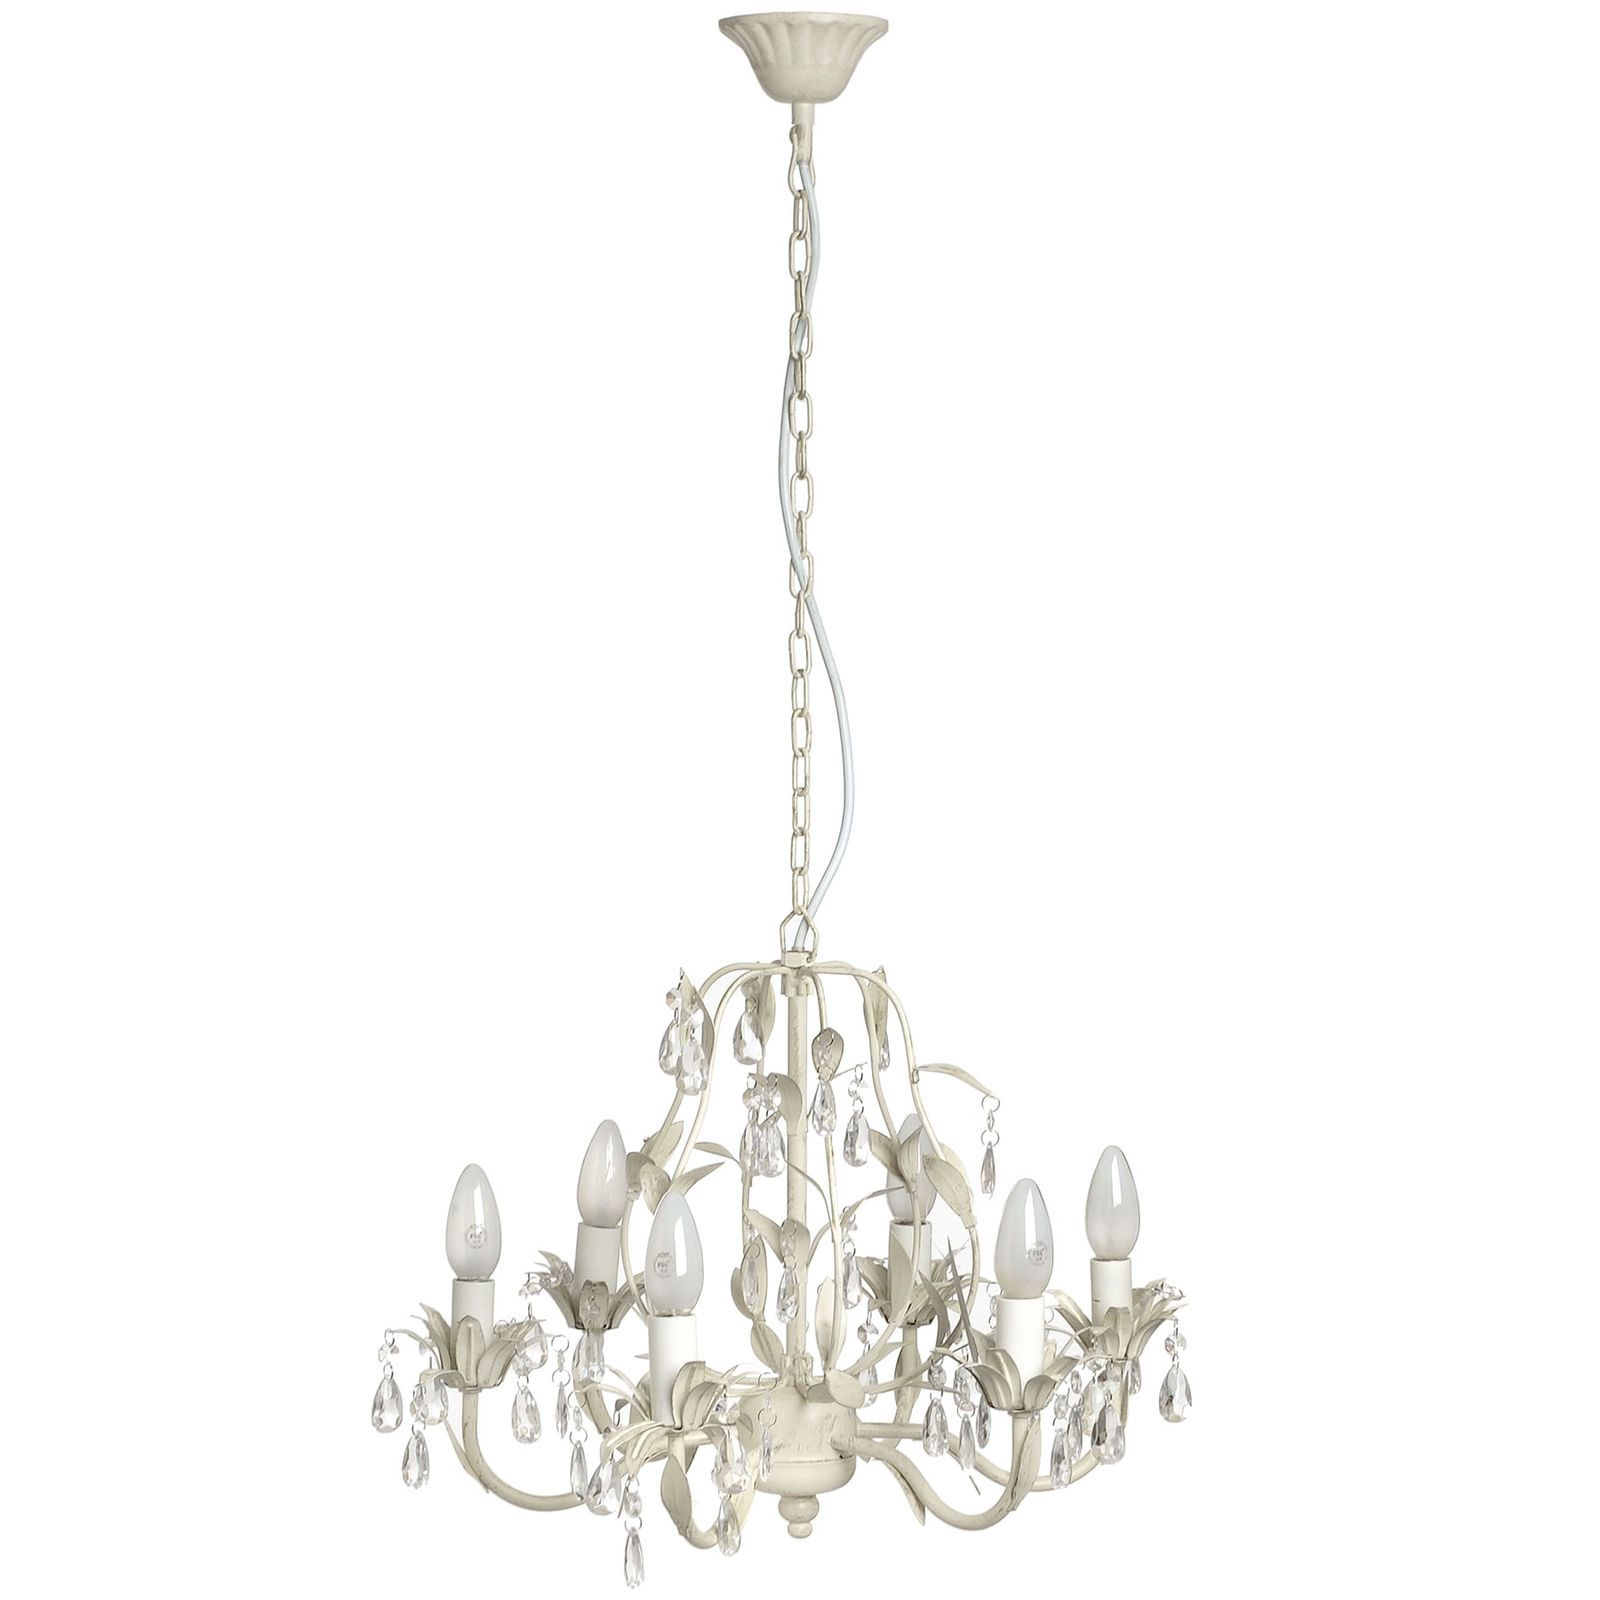 6 Light Arm Chandelier Ceiling Pendant Crystal Effect Shabby French Chic Cream